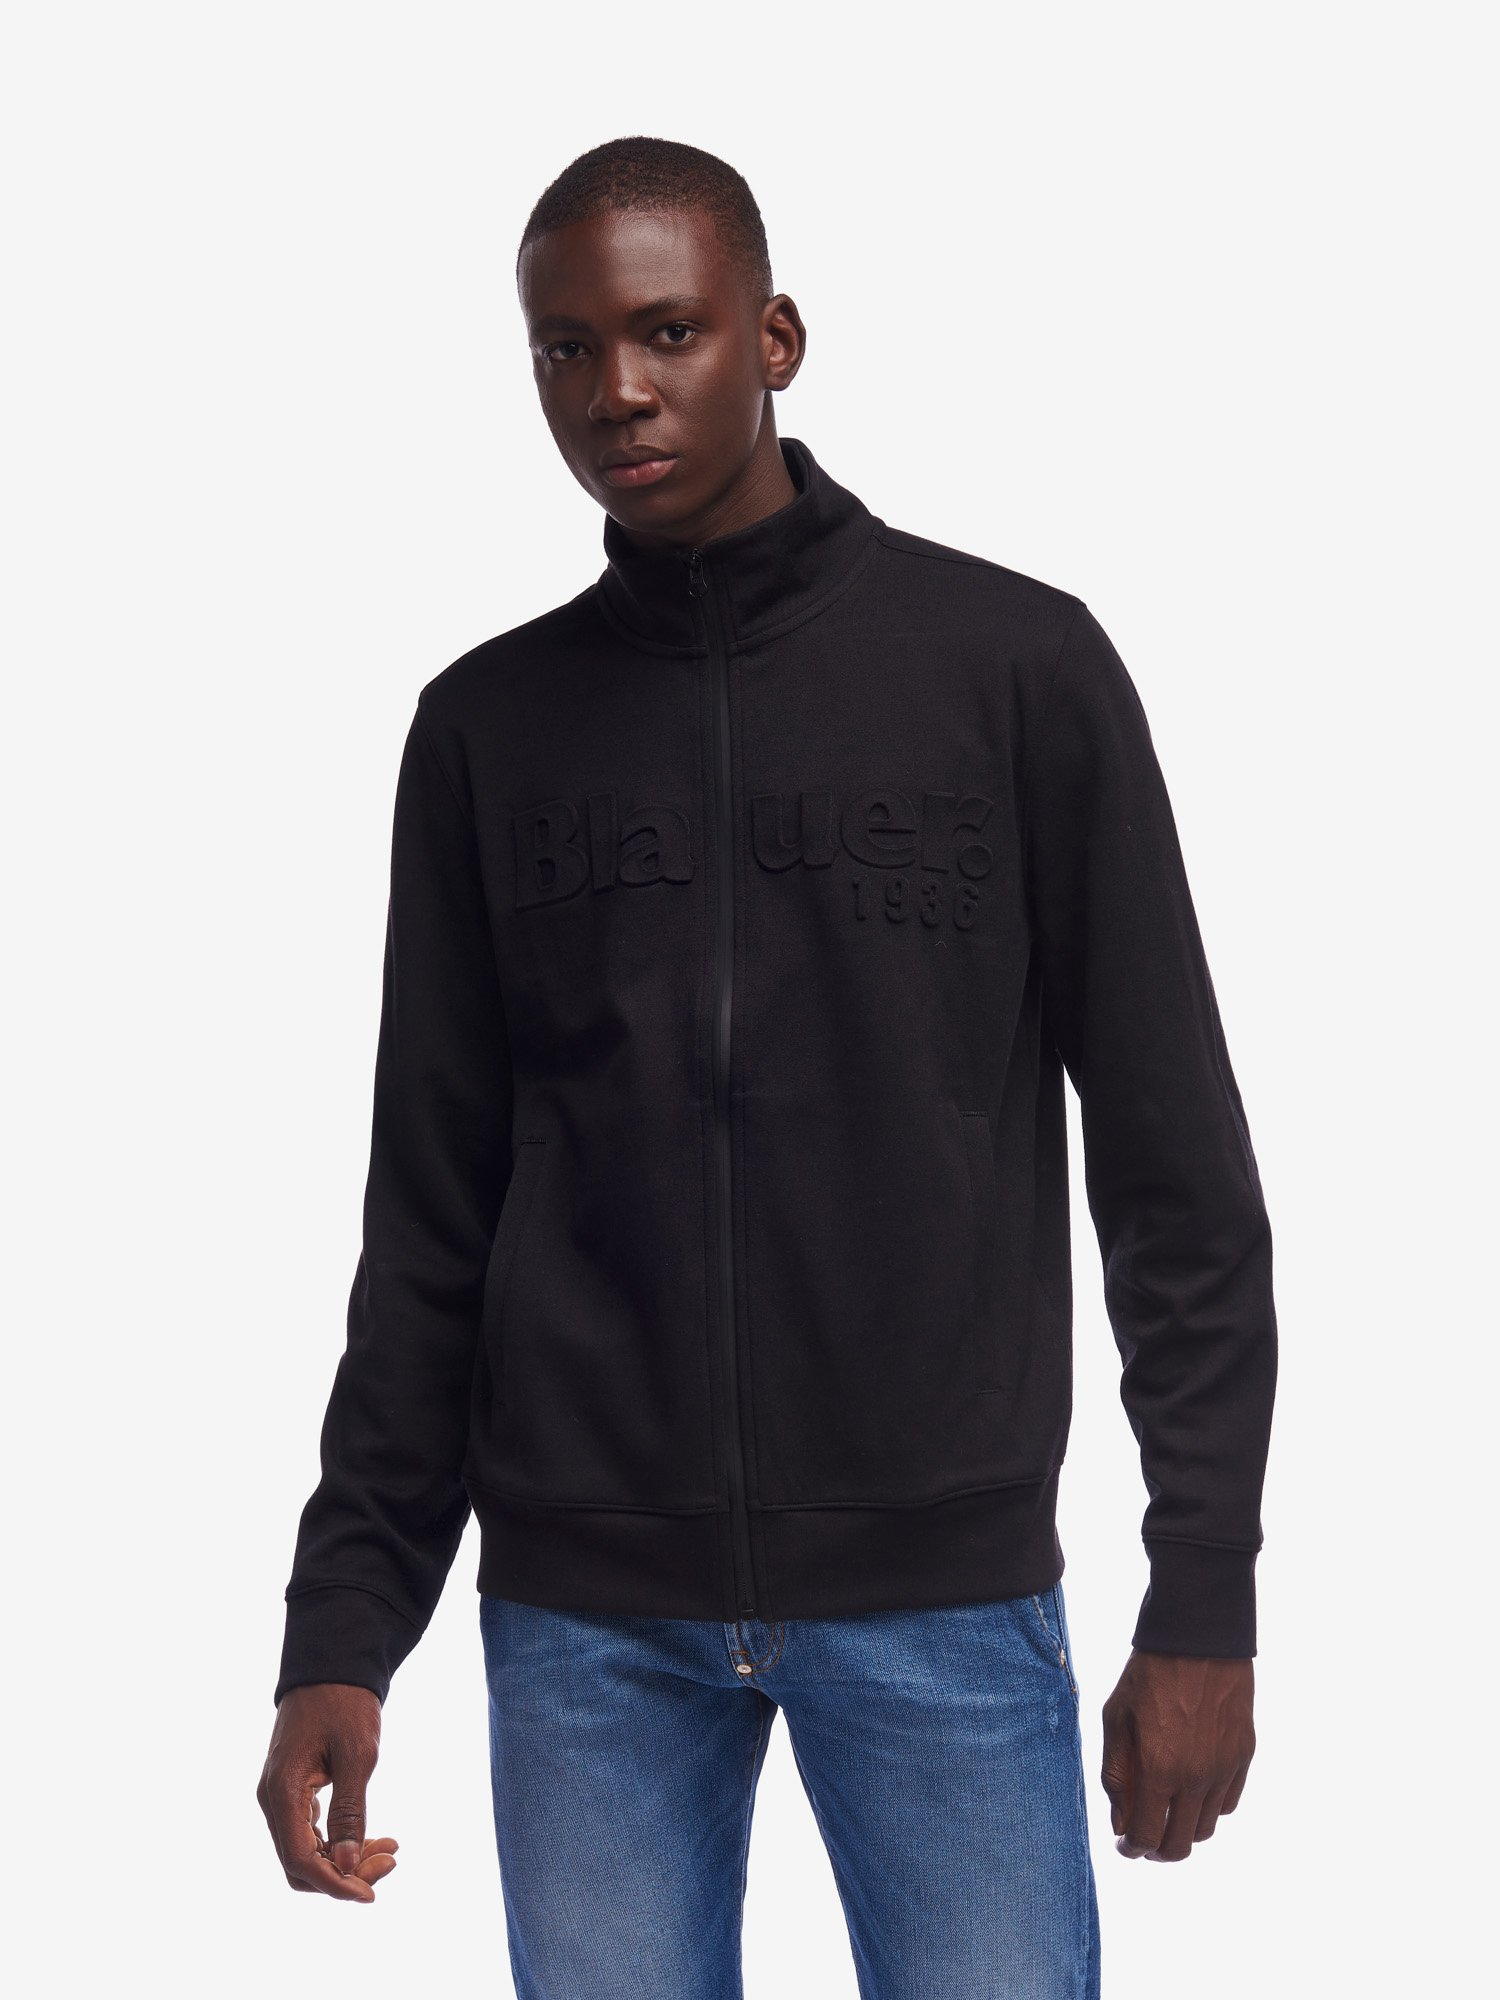 Blauer - COATED ZIP SWEATSHIRT WITH PATCH - Black - Blauer